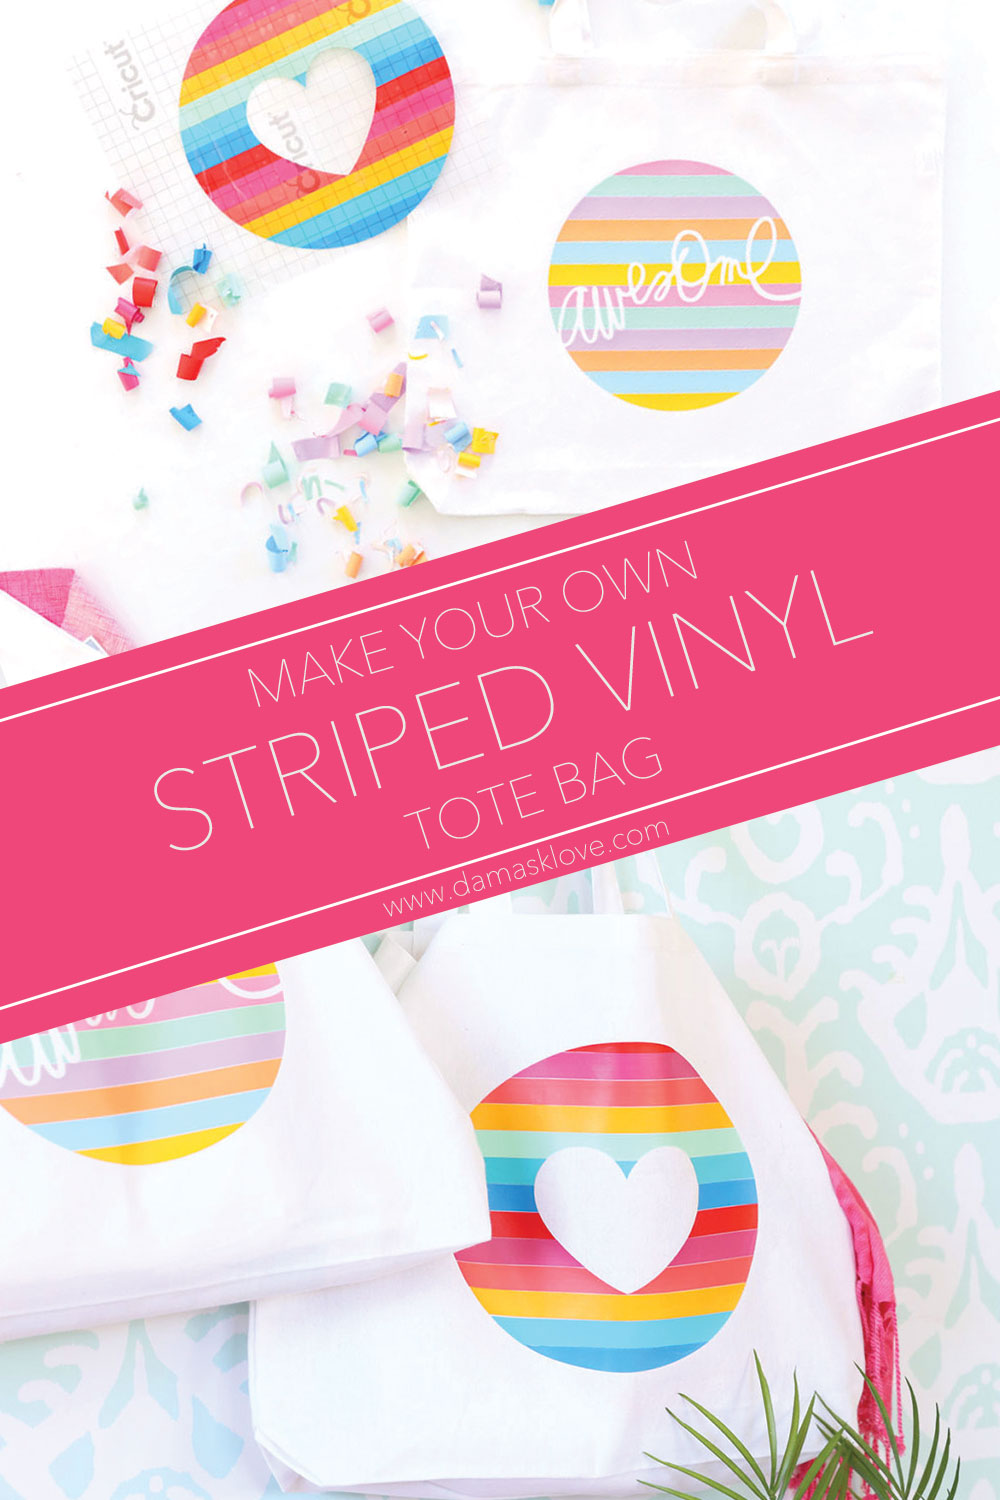 How To Create A Striped Iron On Vinyl Tote Bag Damask Love